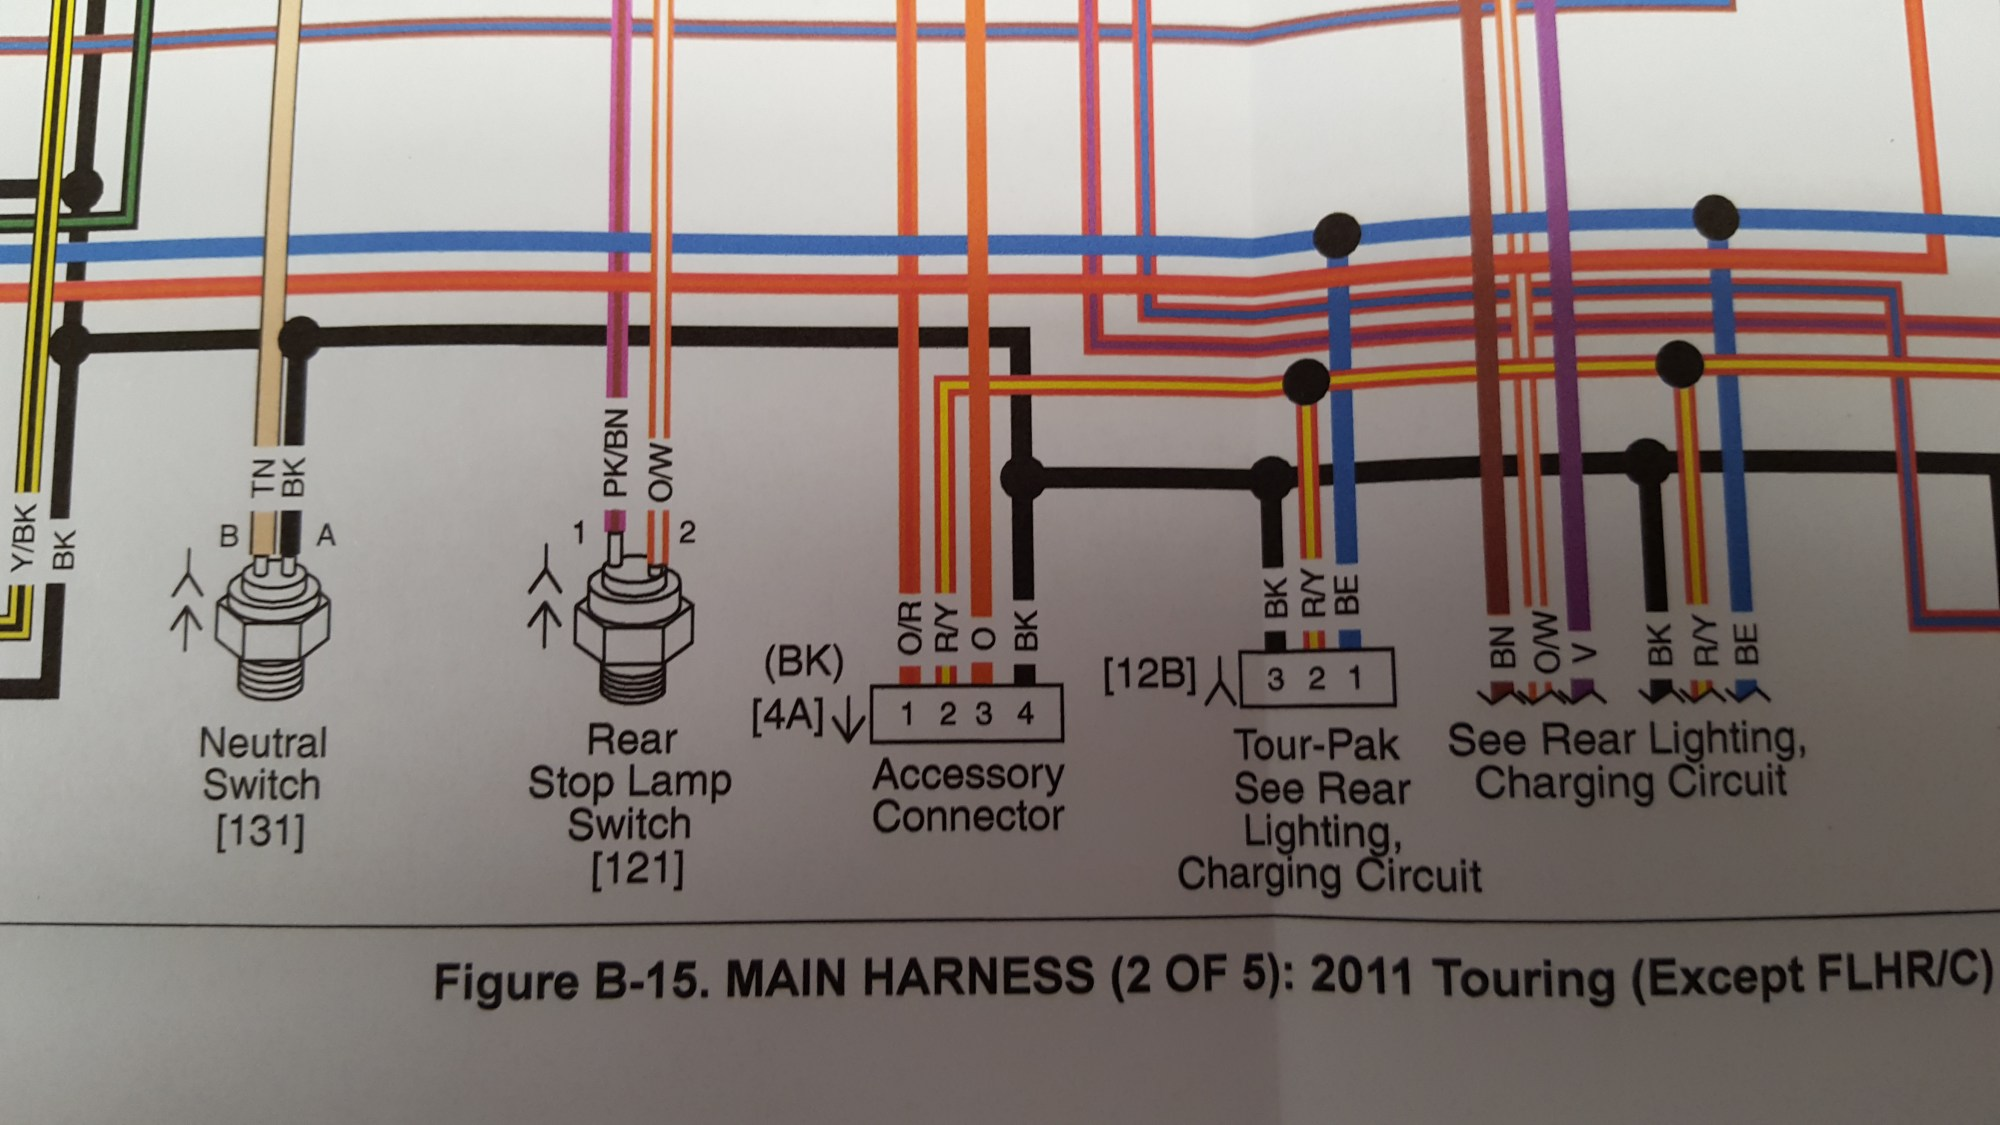 hight resolution of help reading wiring schematic on accessory connector harness close up